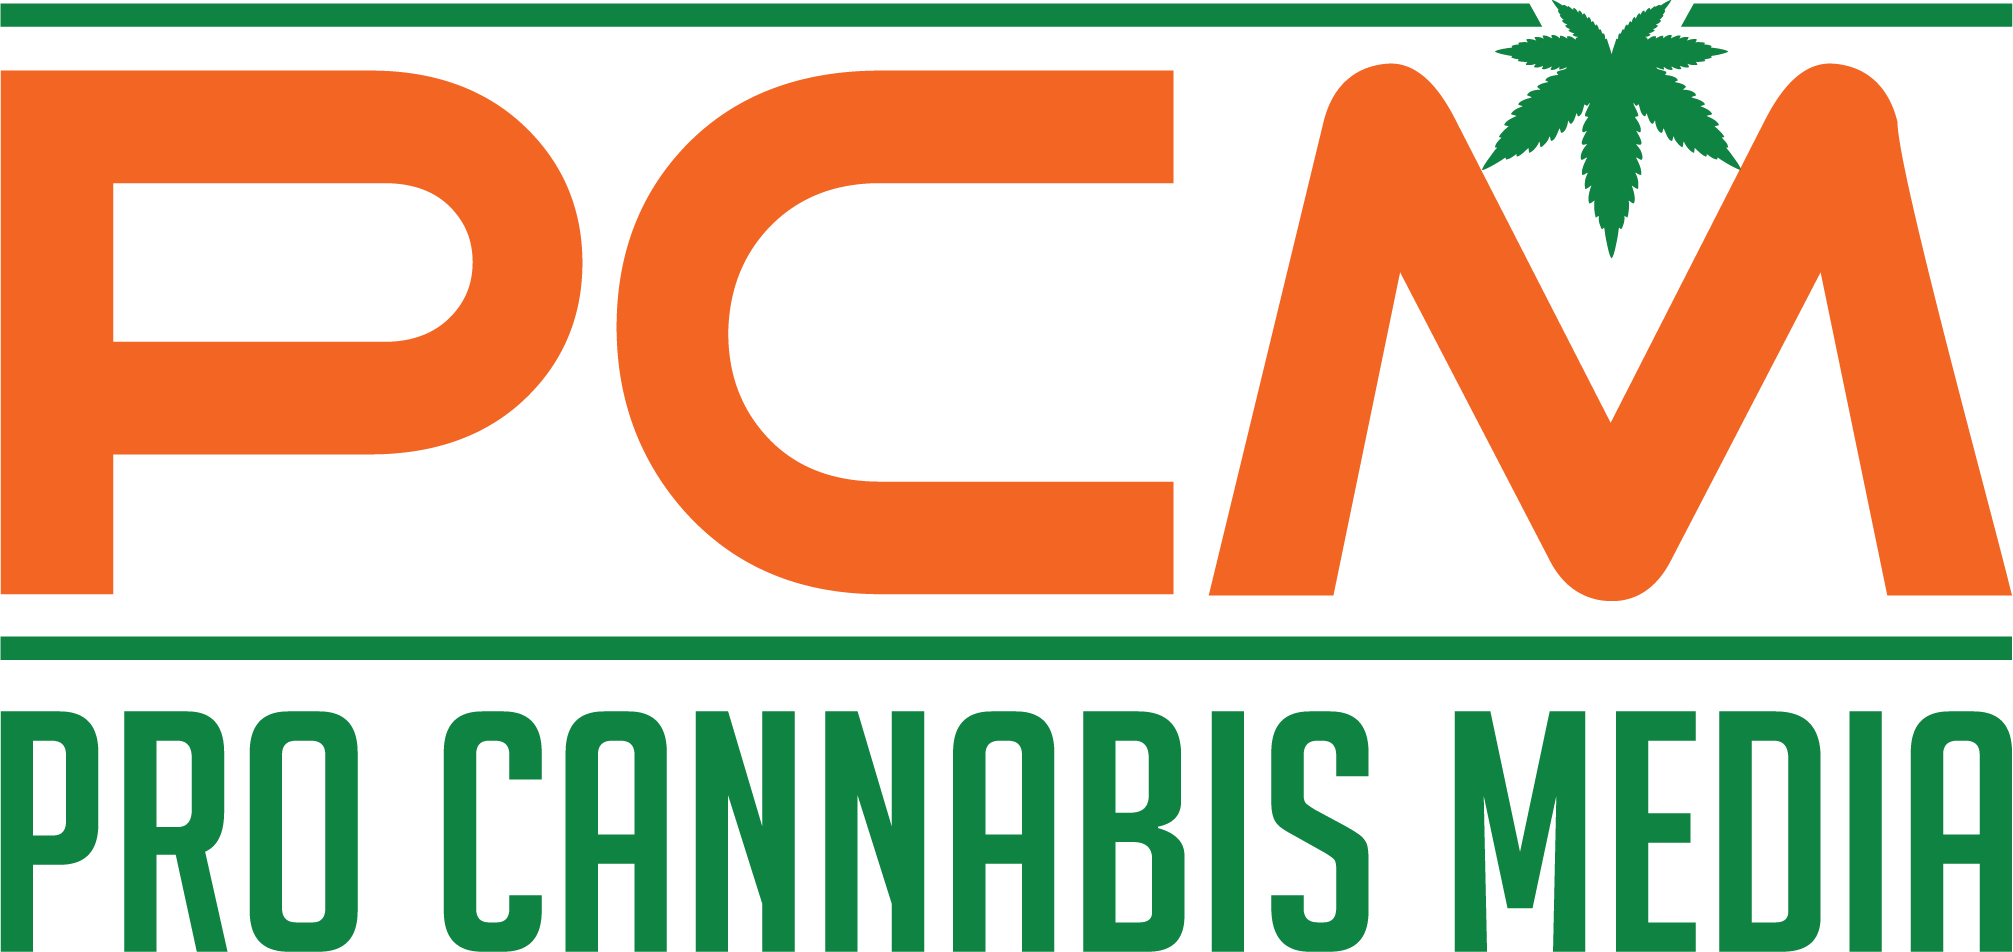 DIALED IN: CANNAPRENEUR ON PRO CANNABIS MEDIA'S CANNABIS NEWS CALL-IN SHOW